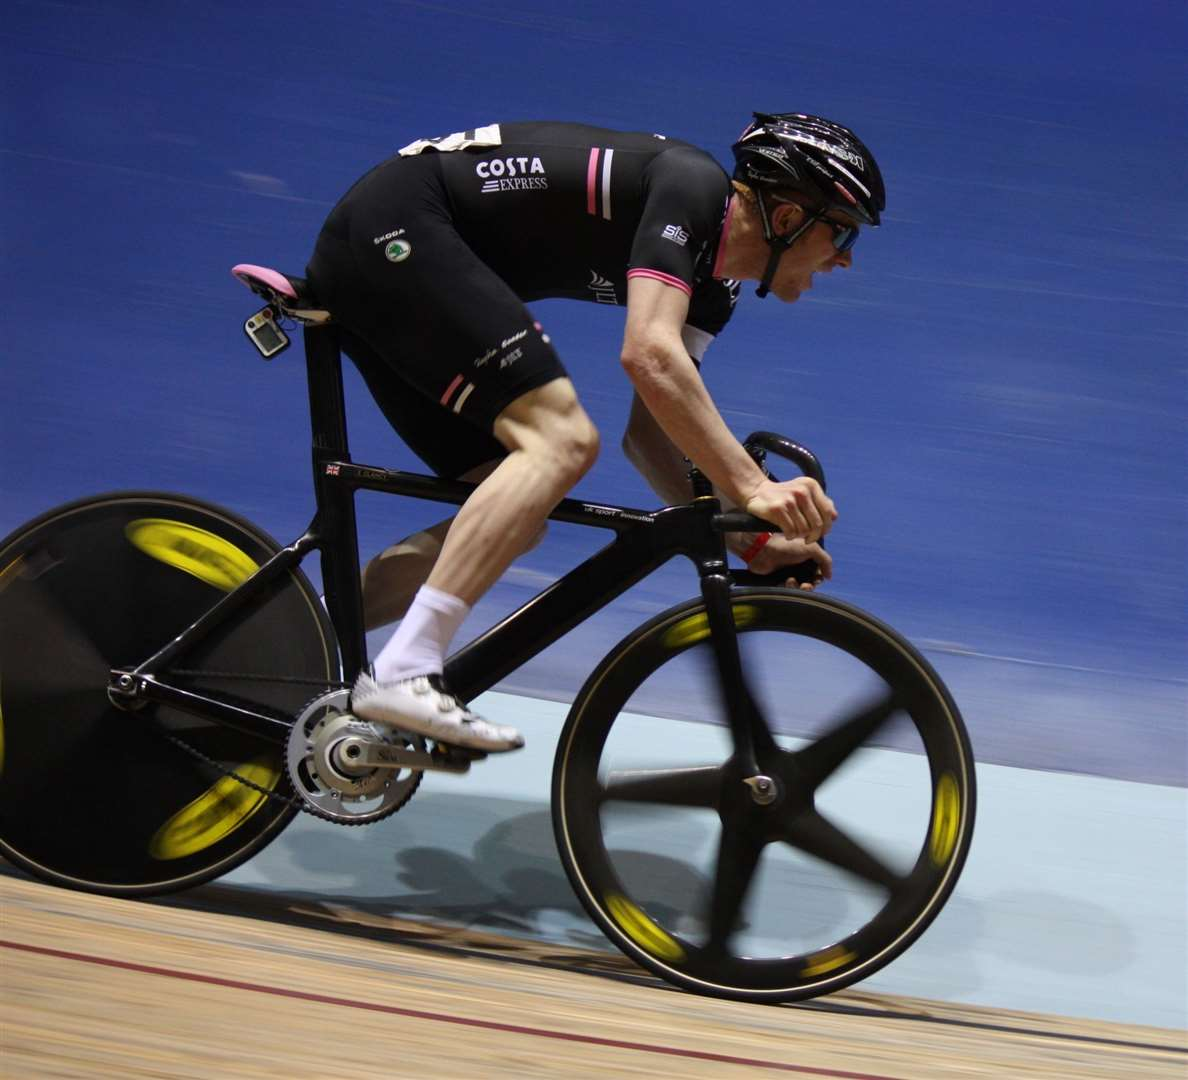 Ed Clancy in action on the track